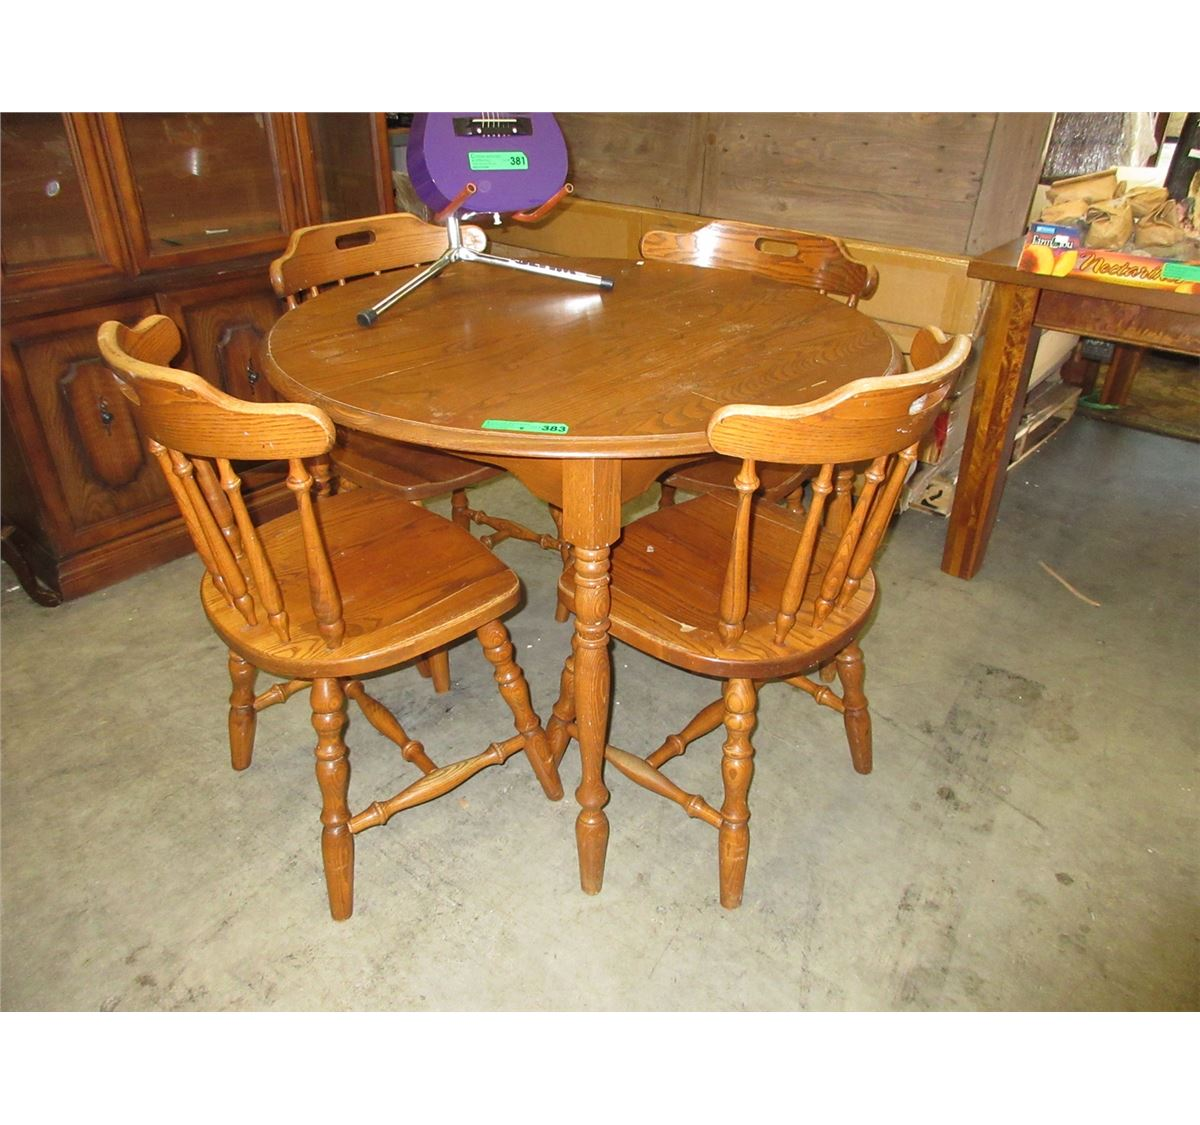 Used round wood dining table with 4 chairs : 232714671 from www.liveauctionworld.com size 1200 x 1125 jpeg 170kB